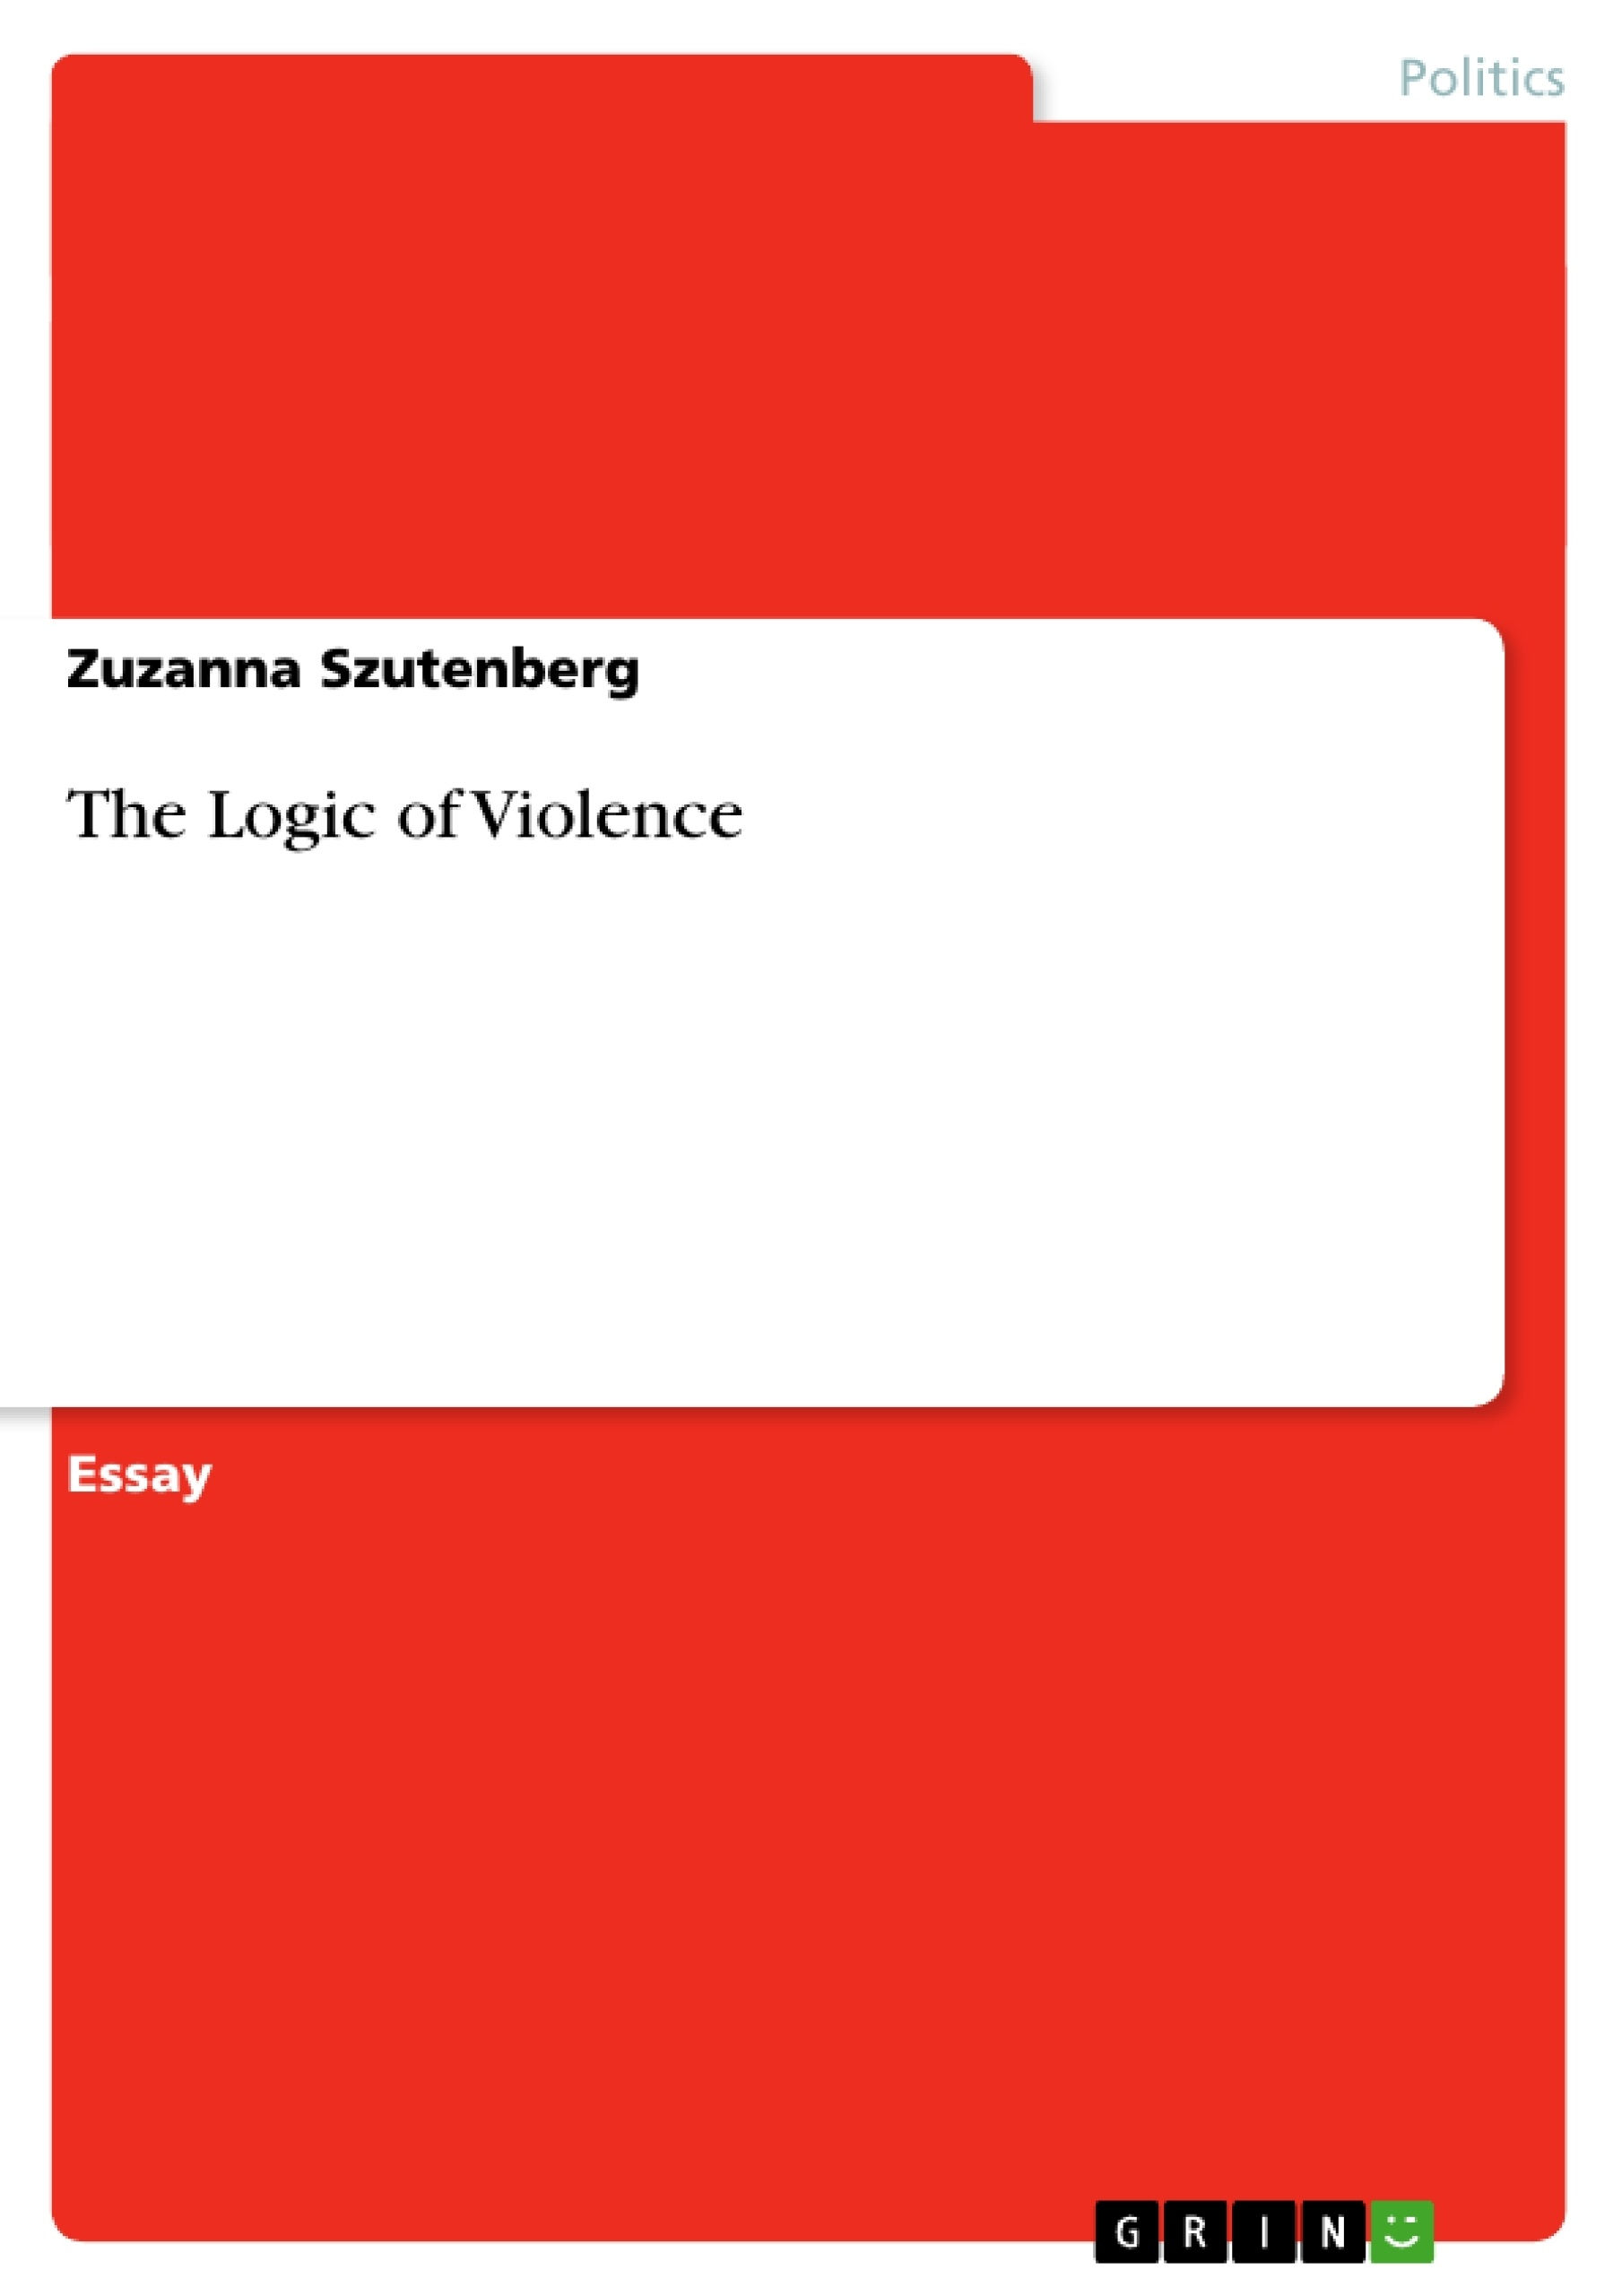 Title: The Logic of Violence